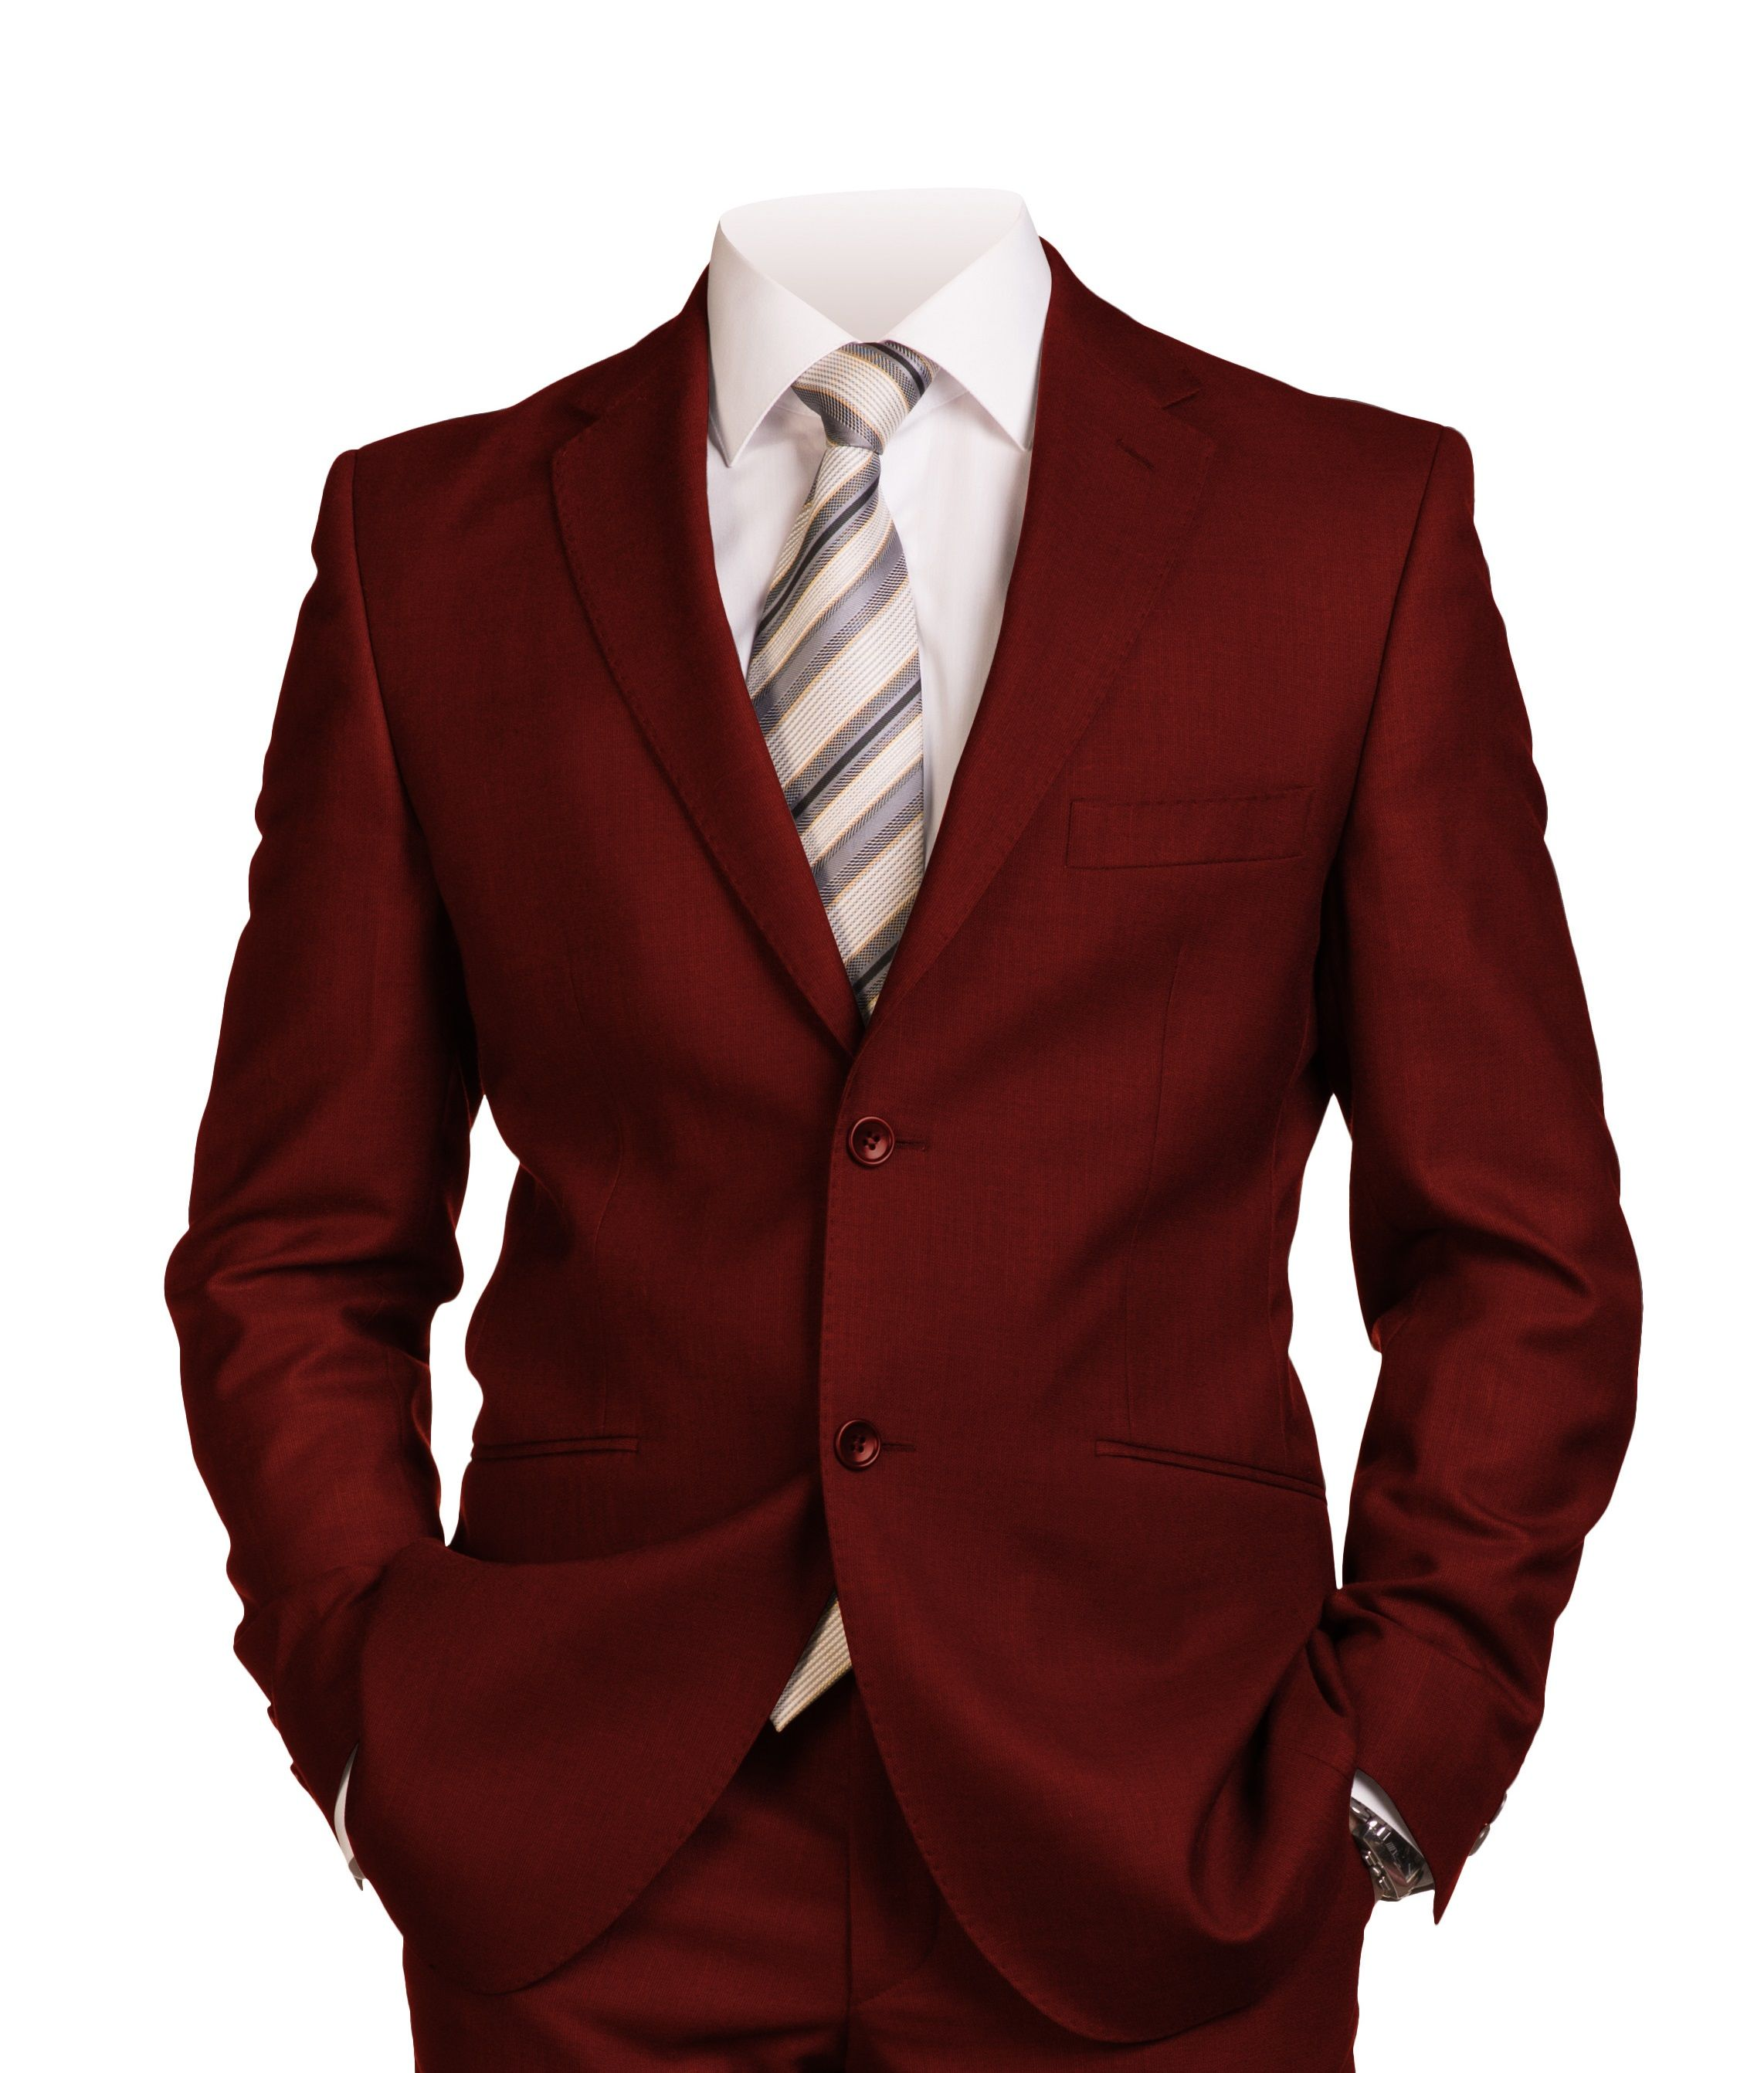 Men's Italian-Style Single-Breasted Suit - Burgundy *BOGO FREE Sale*